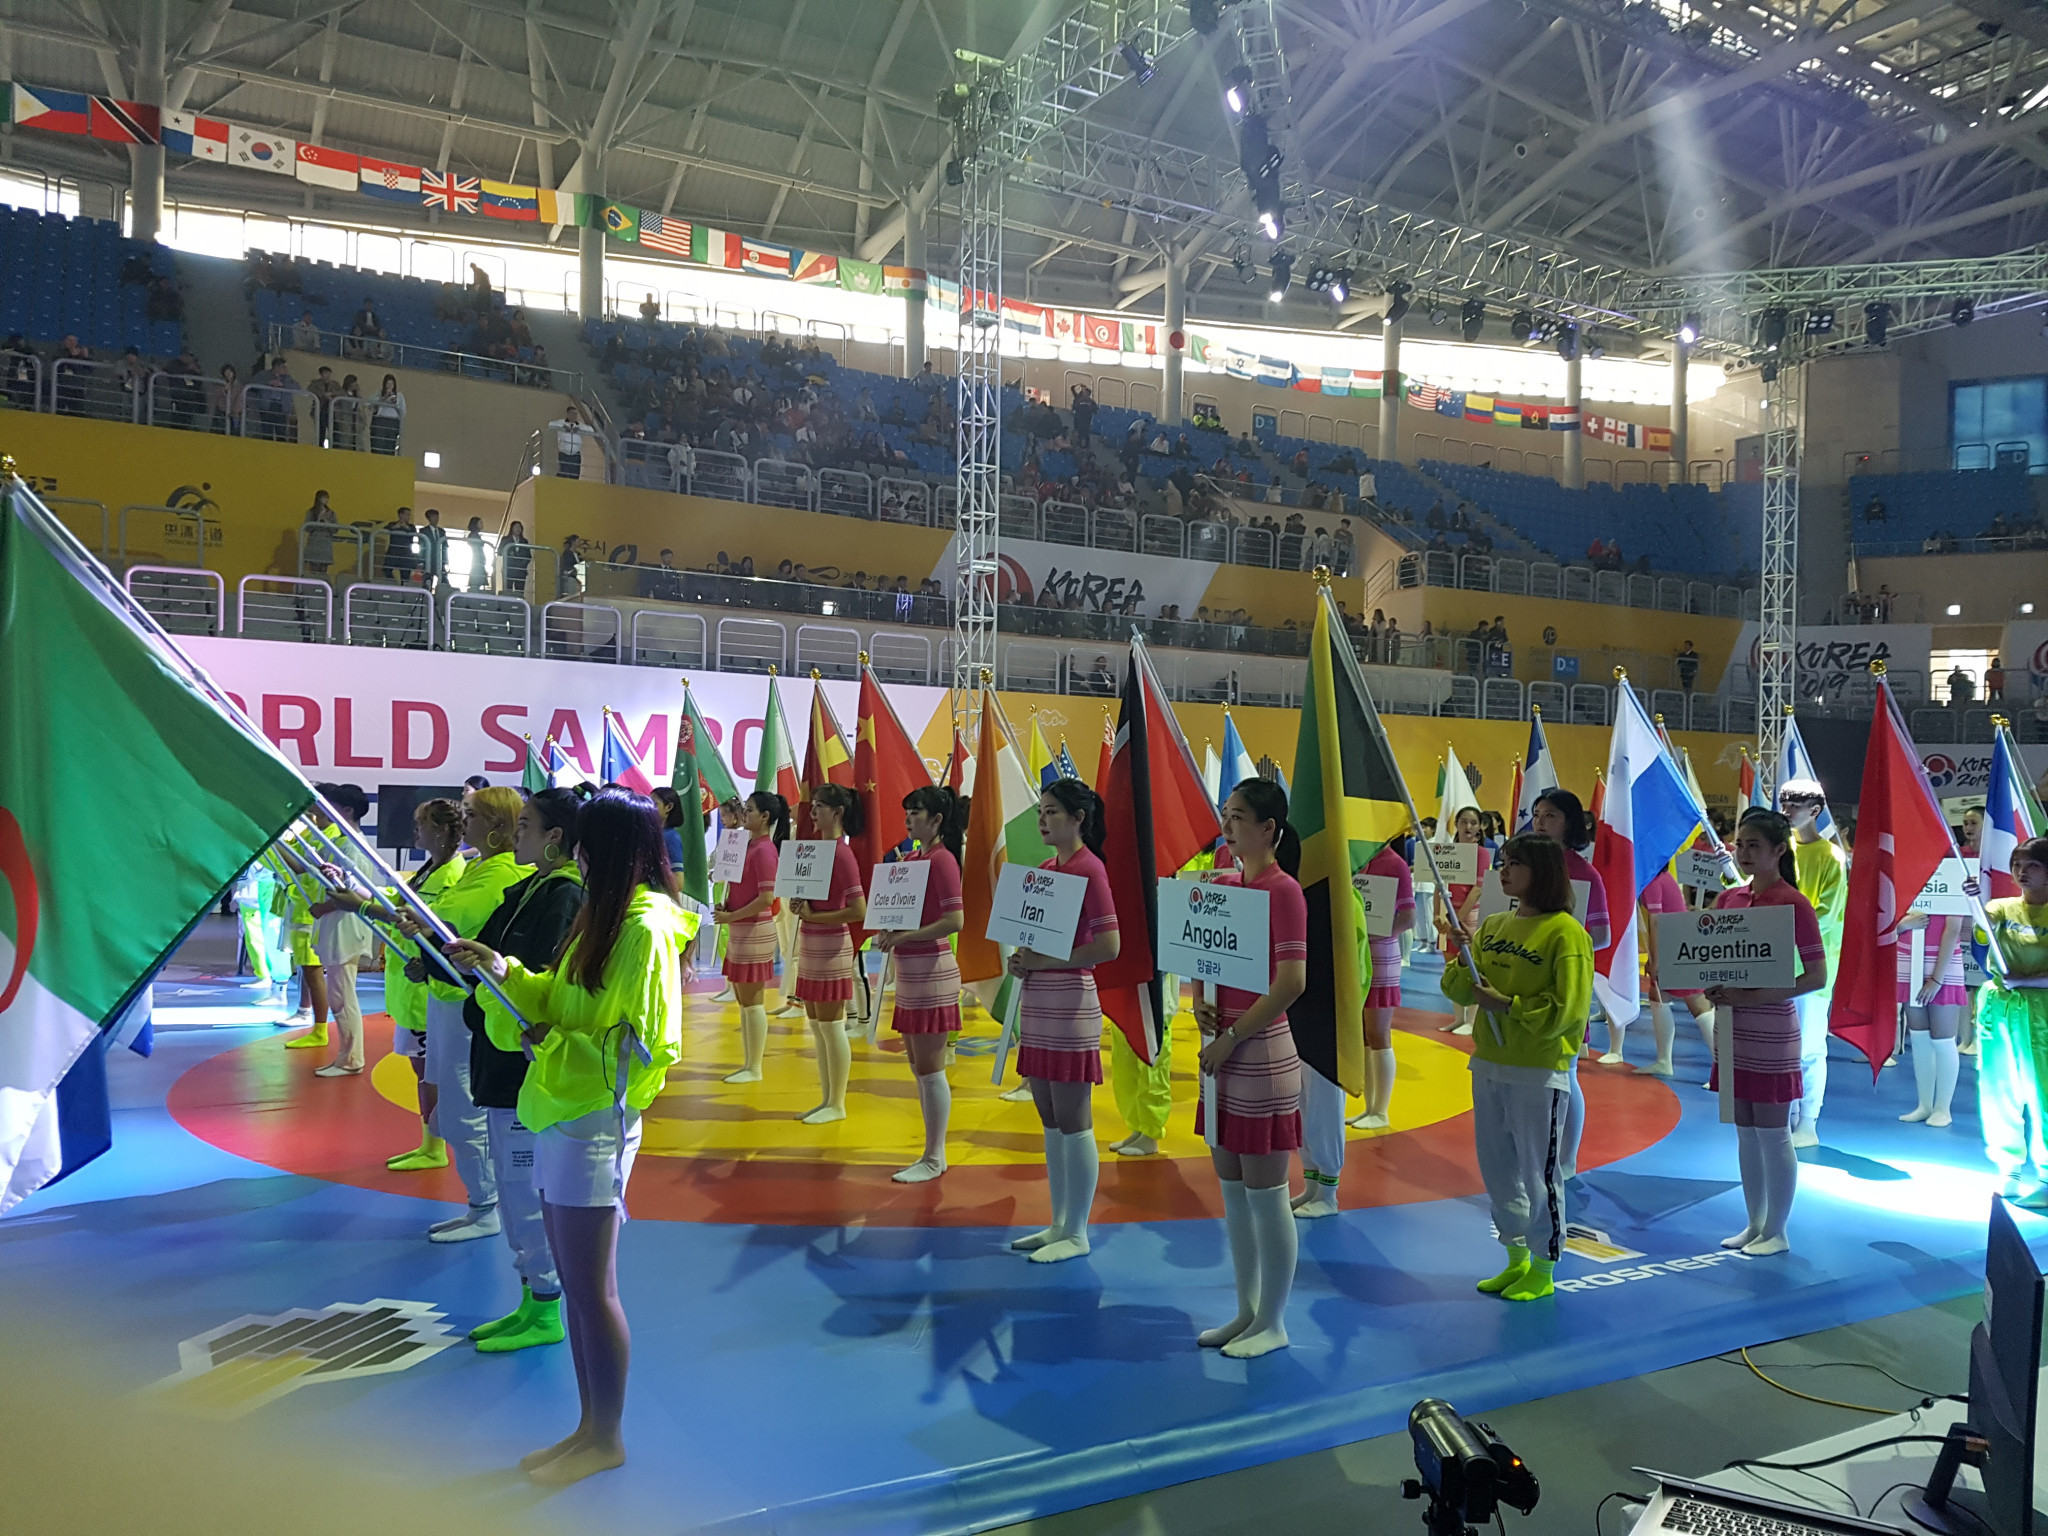 Huge cheers rang around Sukwoo Culture Gym as the flag parade made its way into the arena during the Opening Ceremony ©ITG